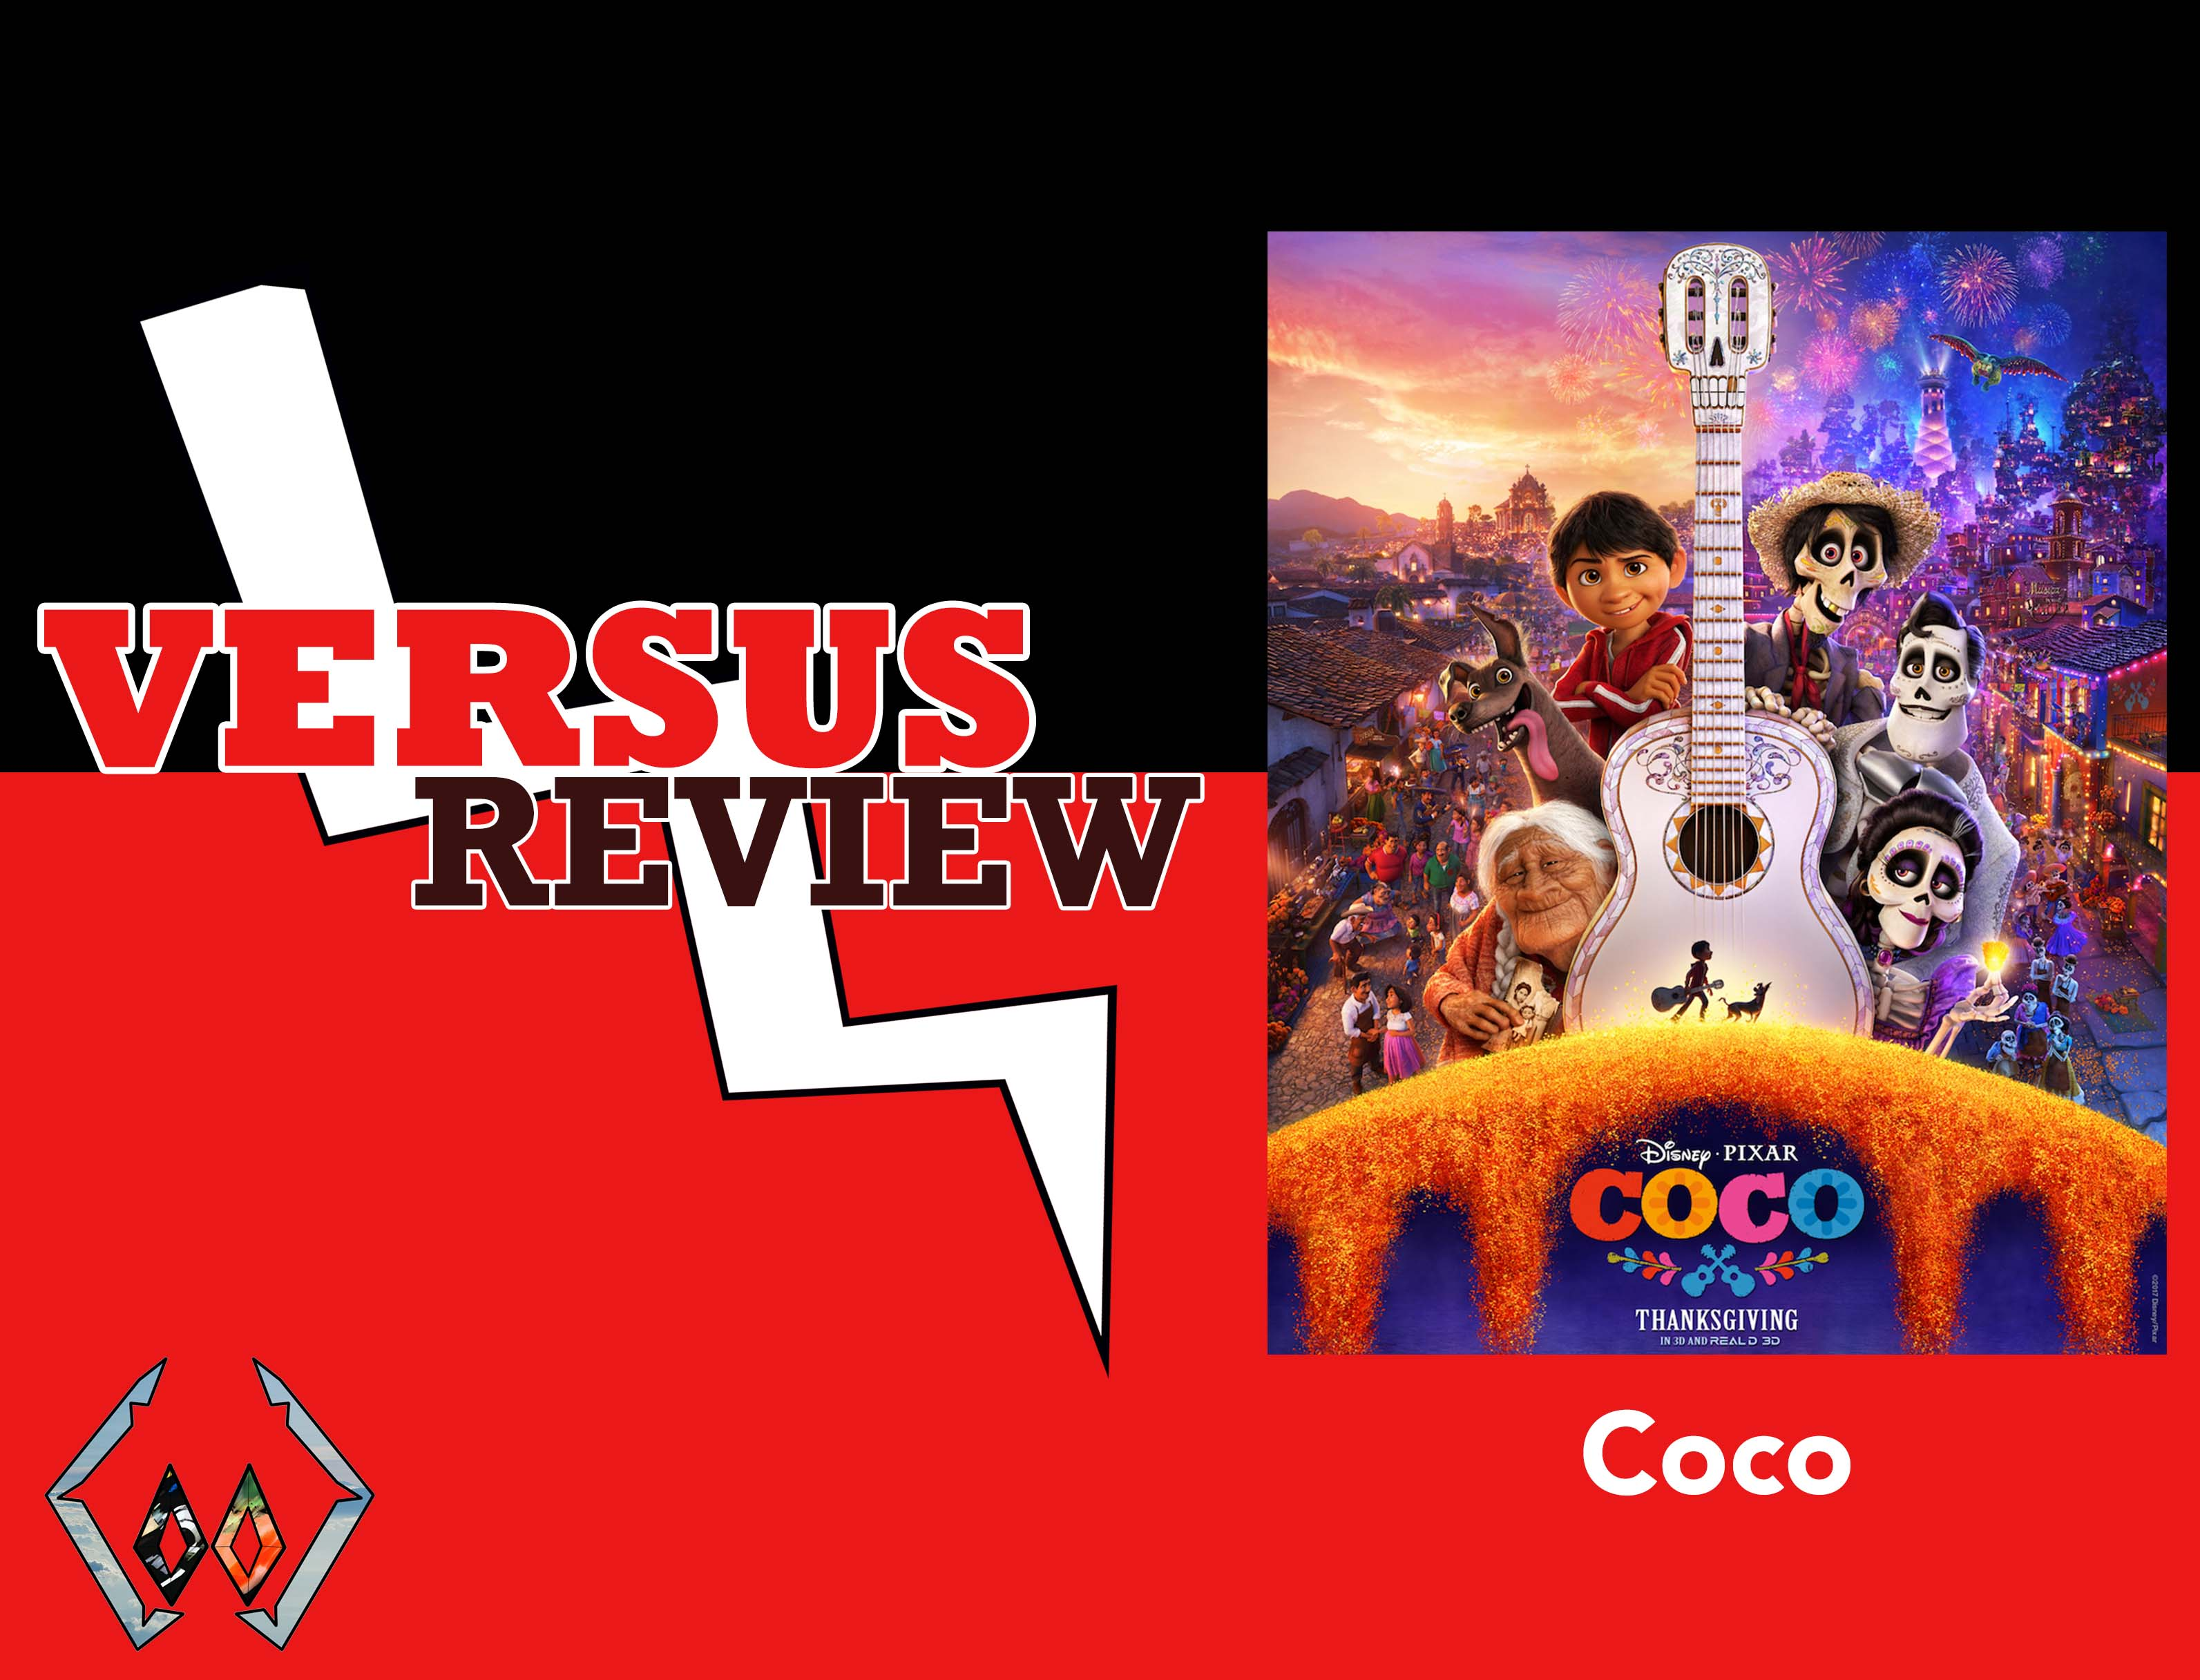 Coco film review post image